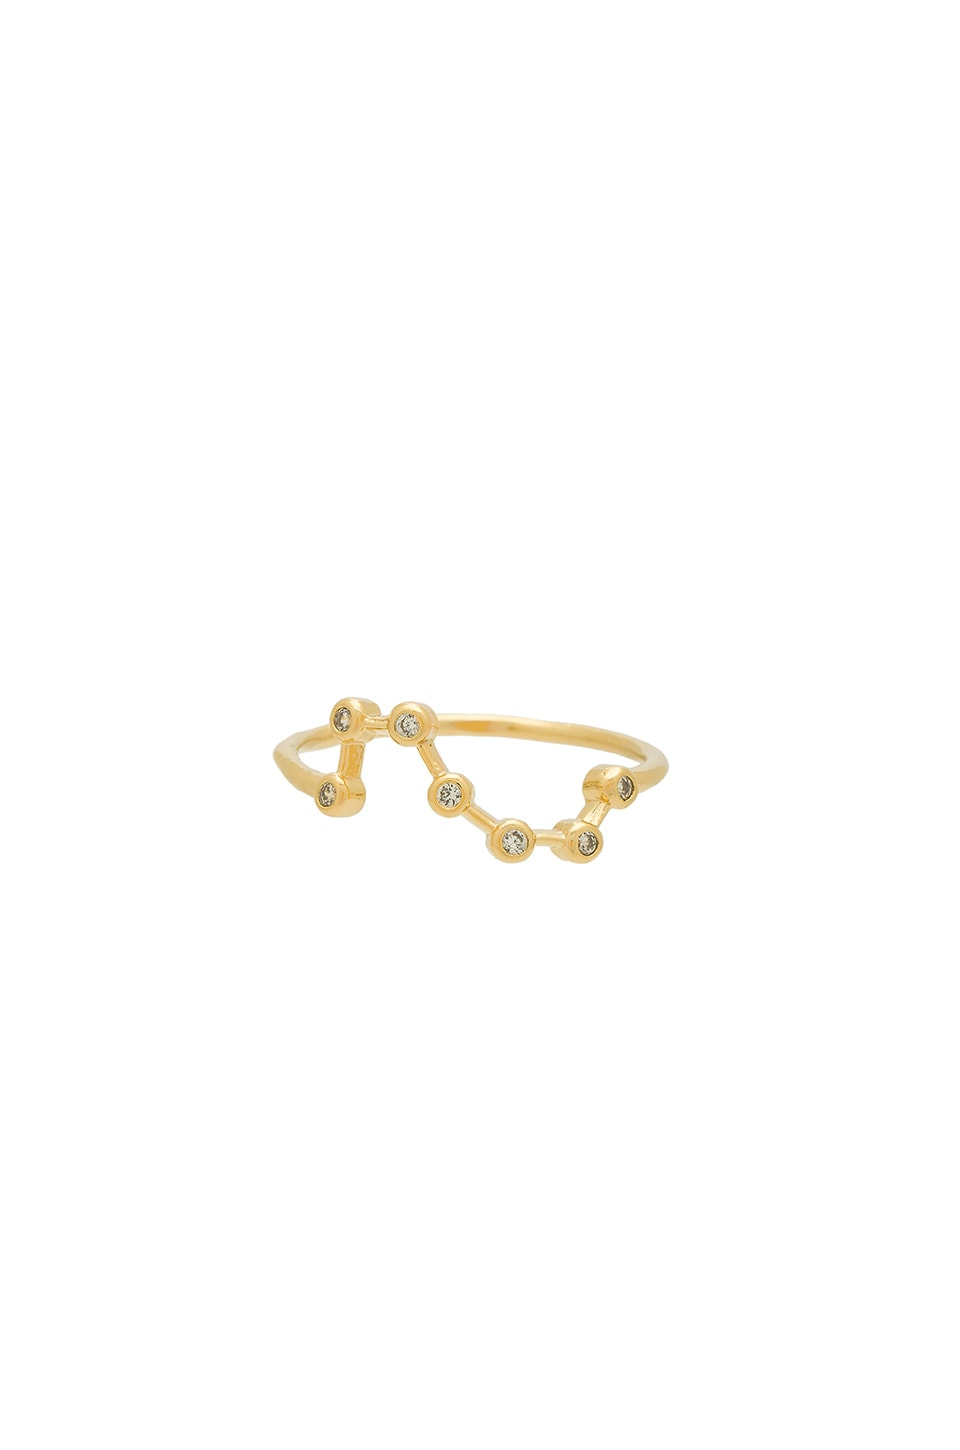 Wanderlust + Co Constellation Ring in Gold